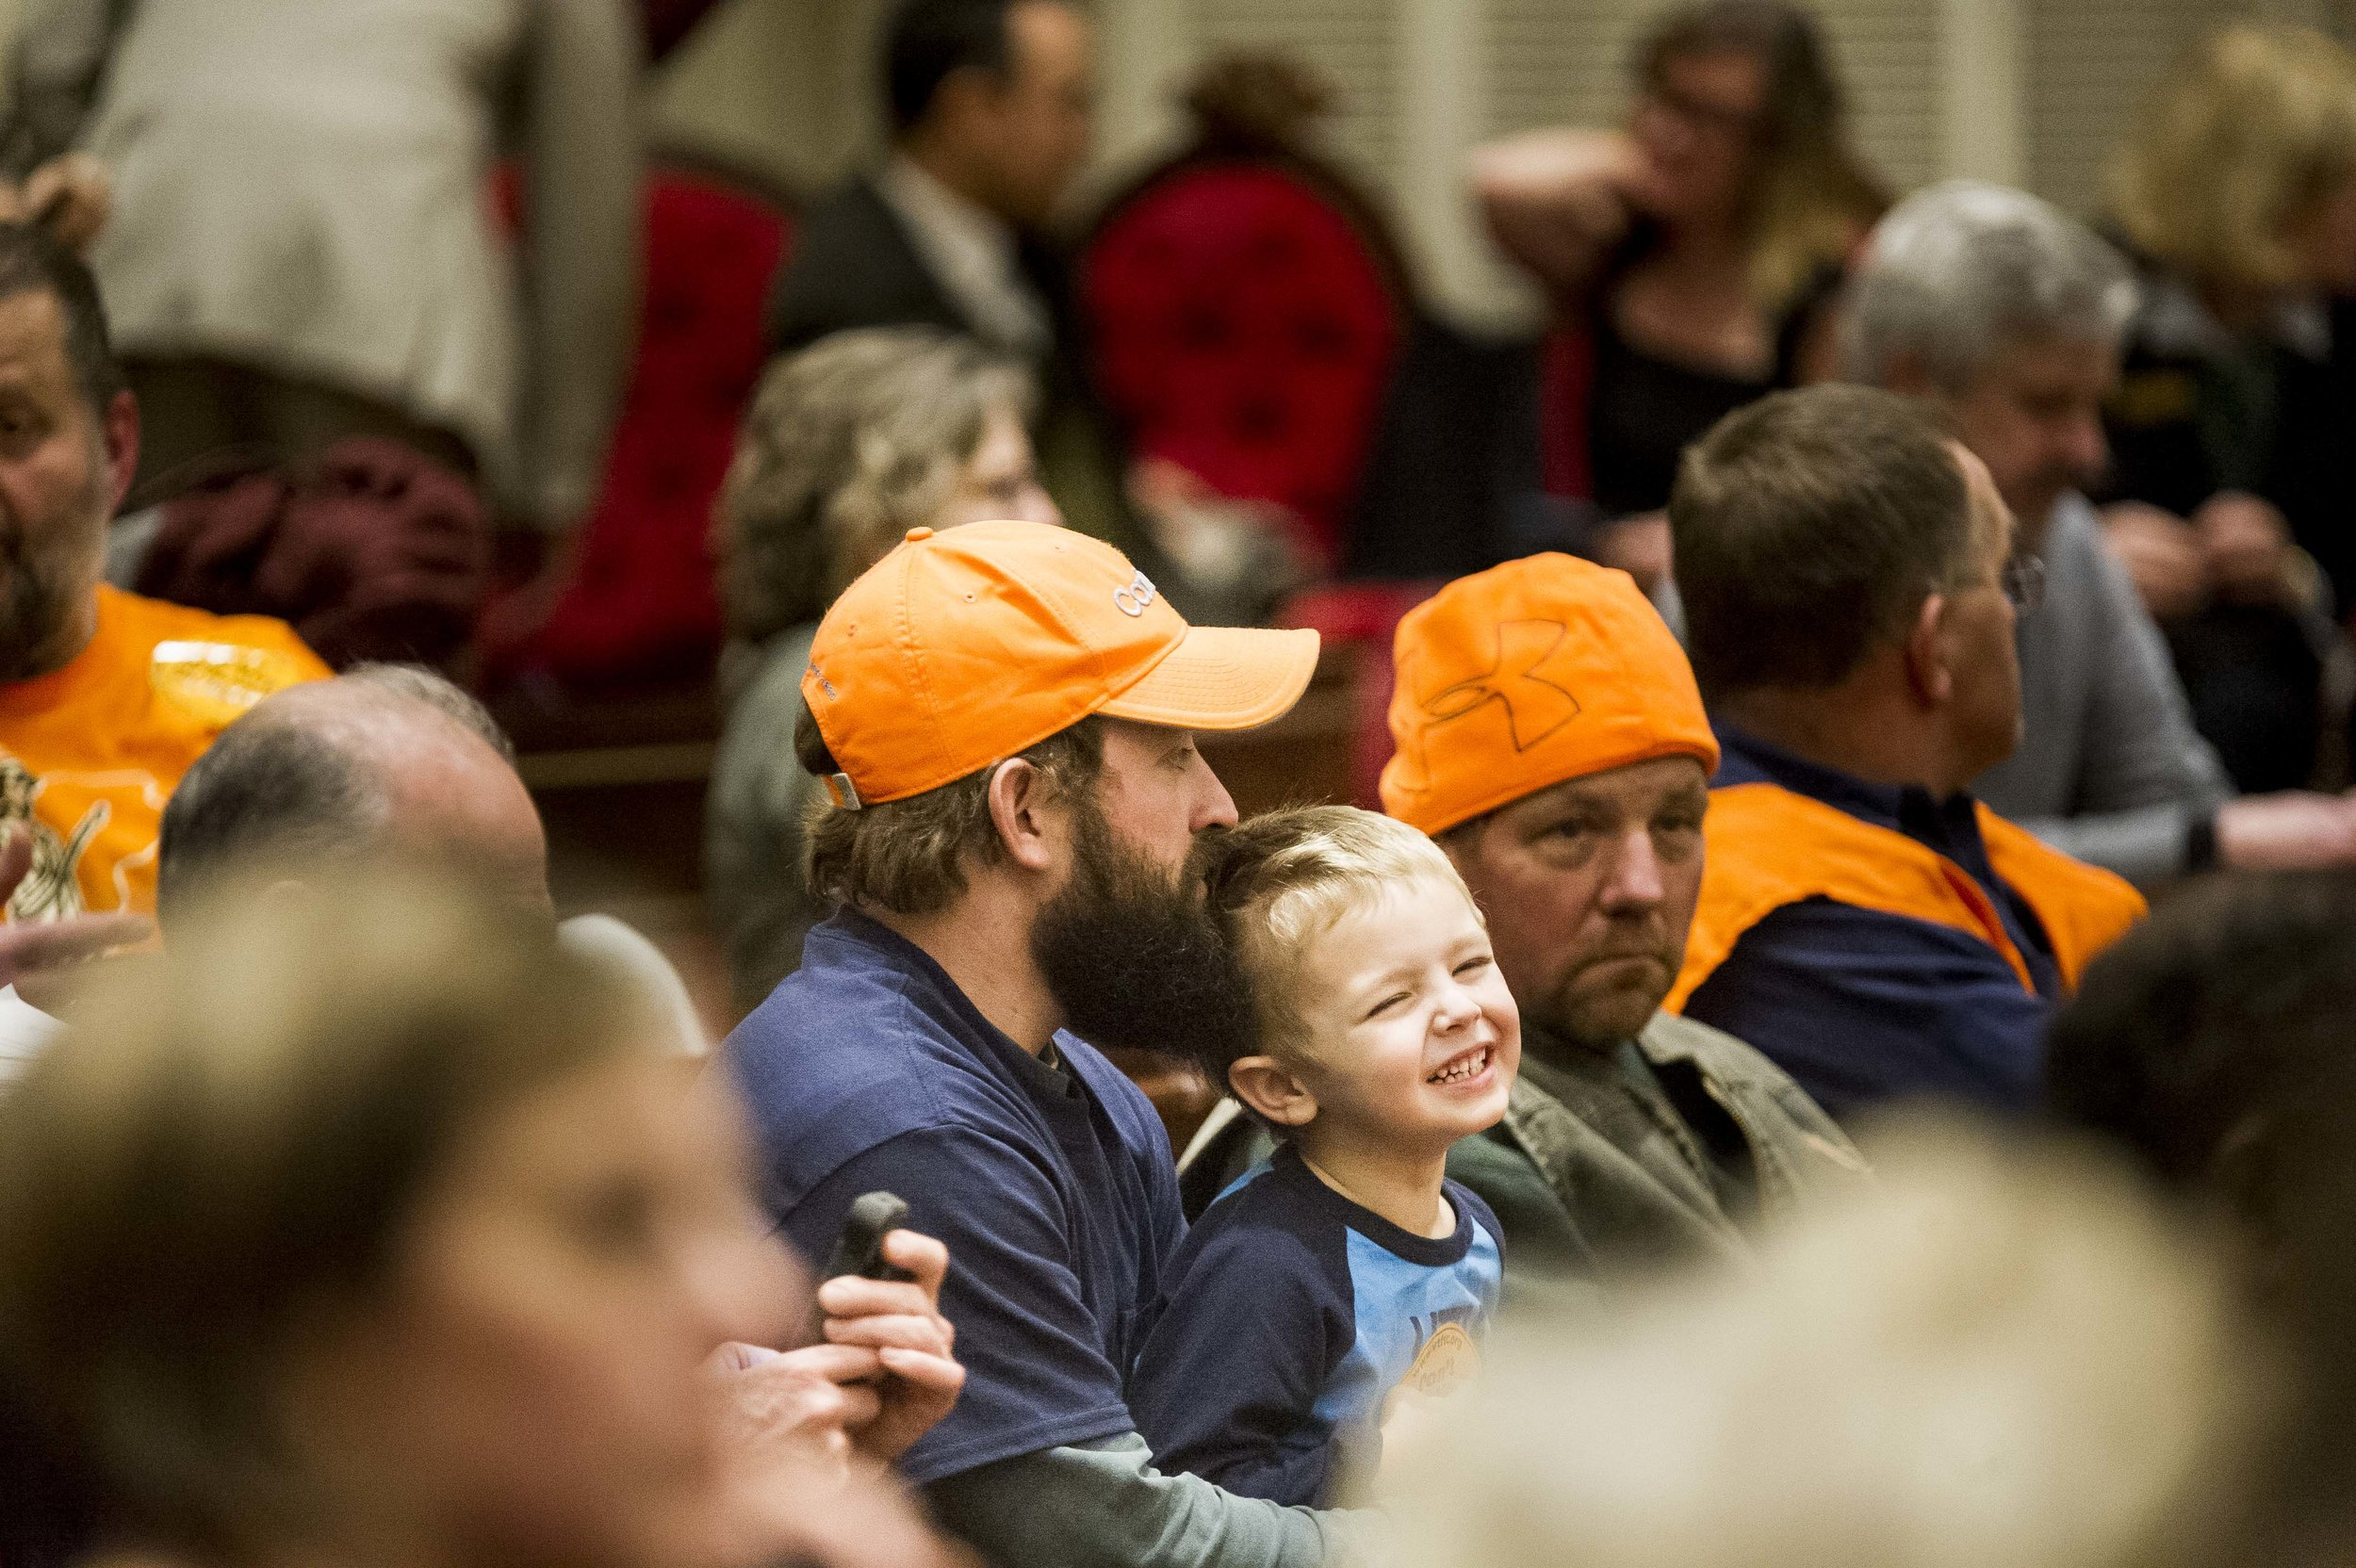 Kale Barberi of Marshfield talks with his son Gavin, 4, as groups opposed to new gun legislation, donning blaze orange apparel, turned out in high numbers to attend public hearings at the State House on Tuesday, January 30th 2018.